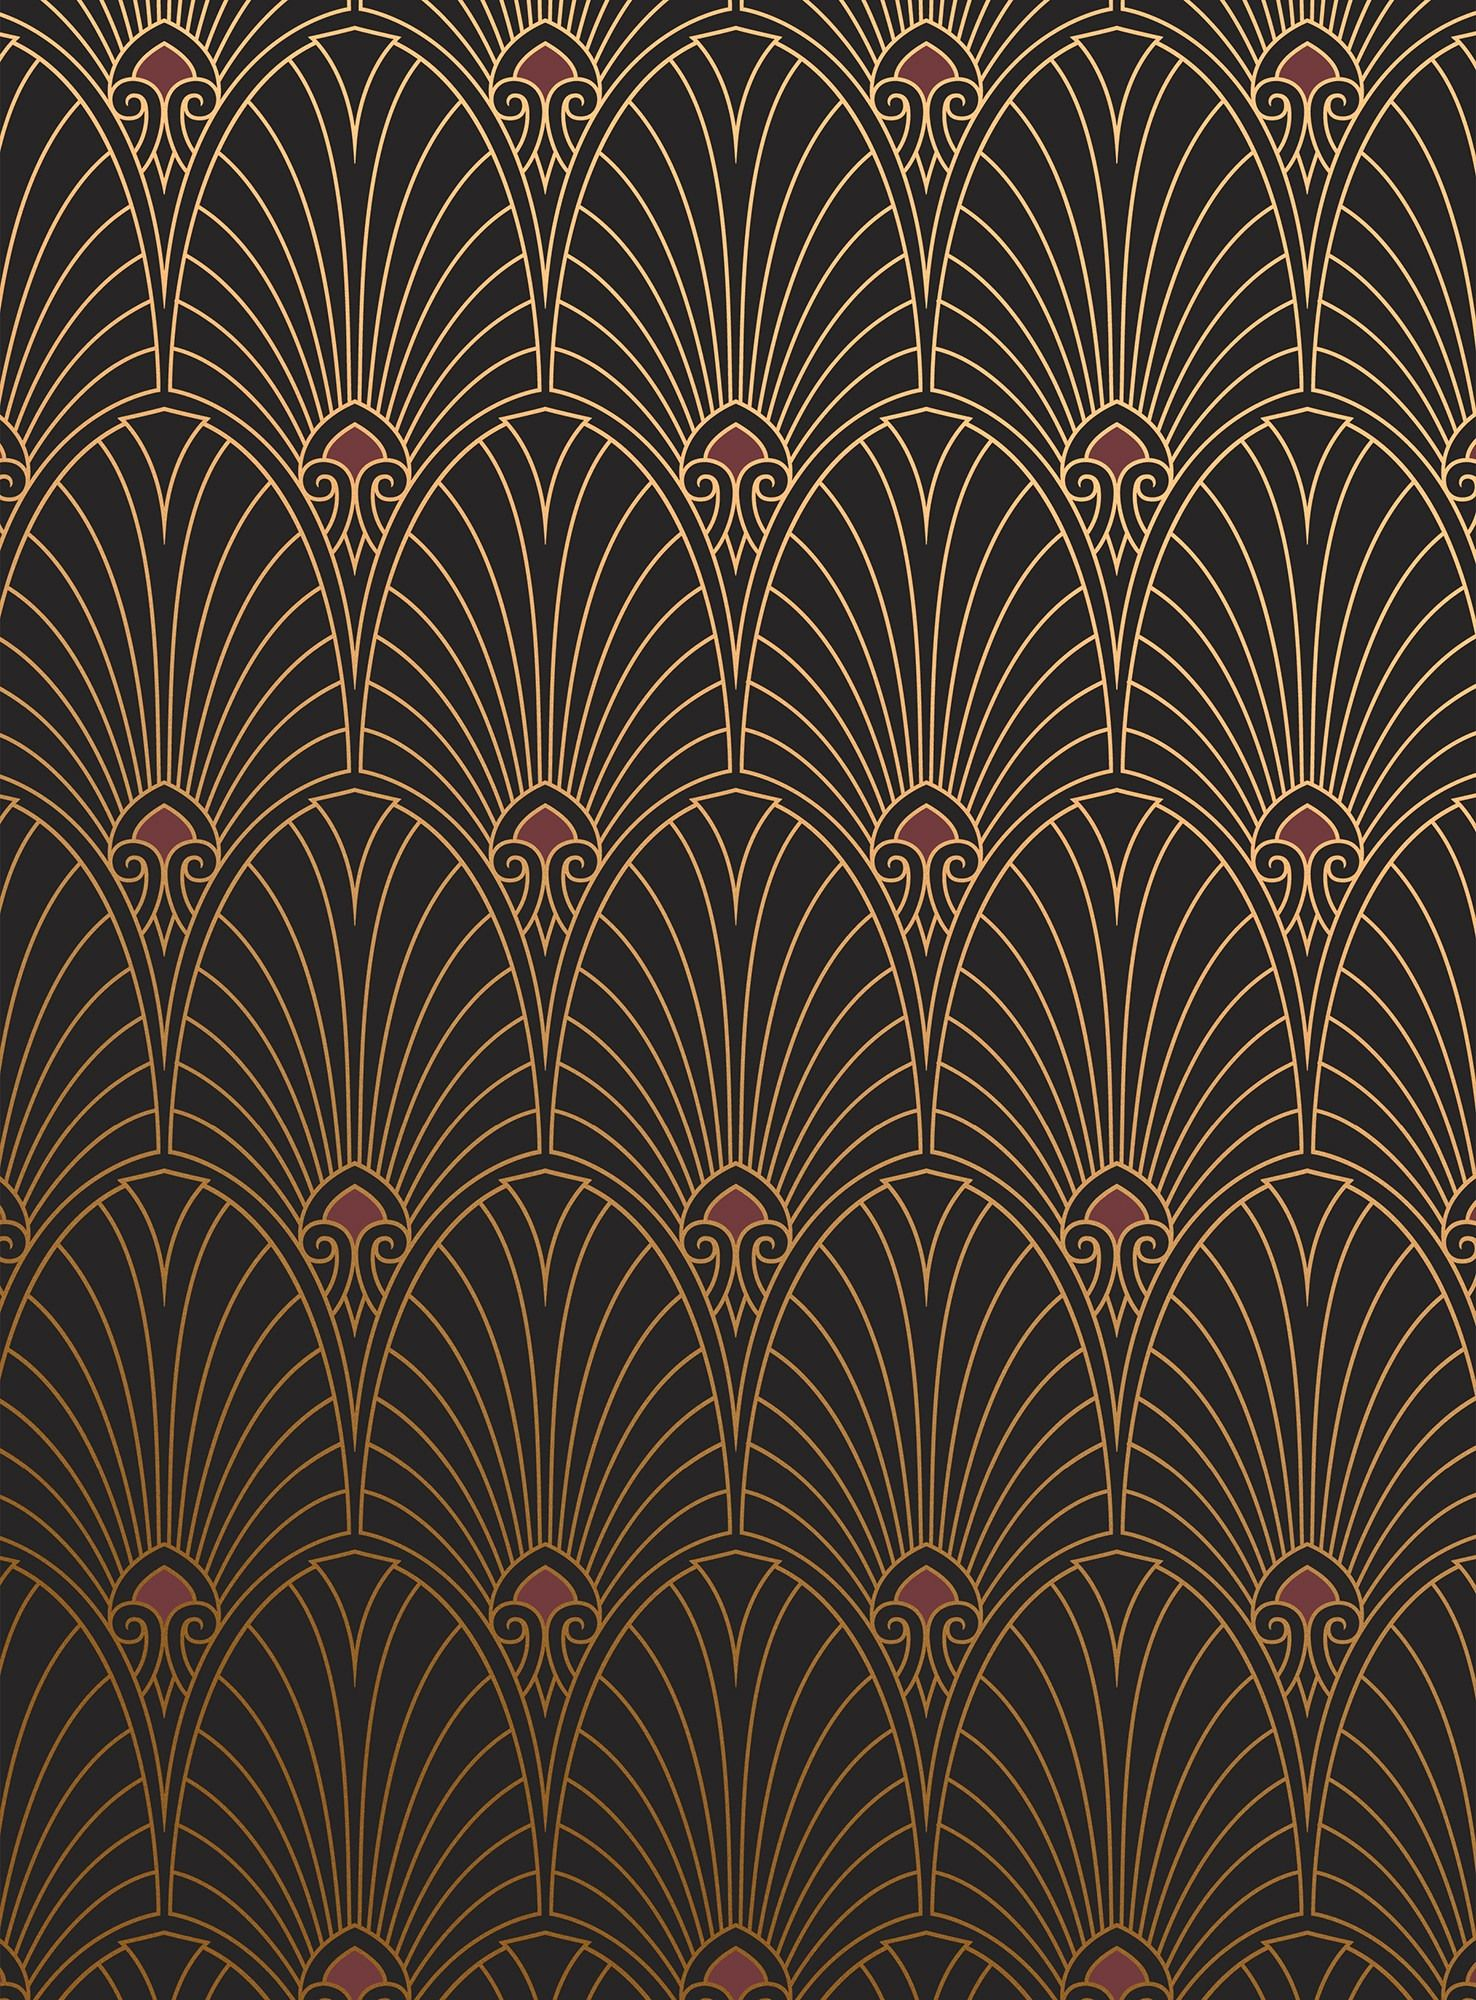 Beautiful Art Nouveau Wall Art Of Art Deco Wallpaper ·①